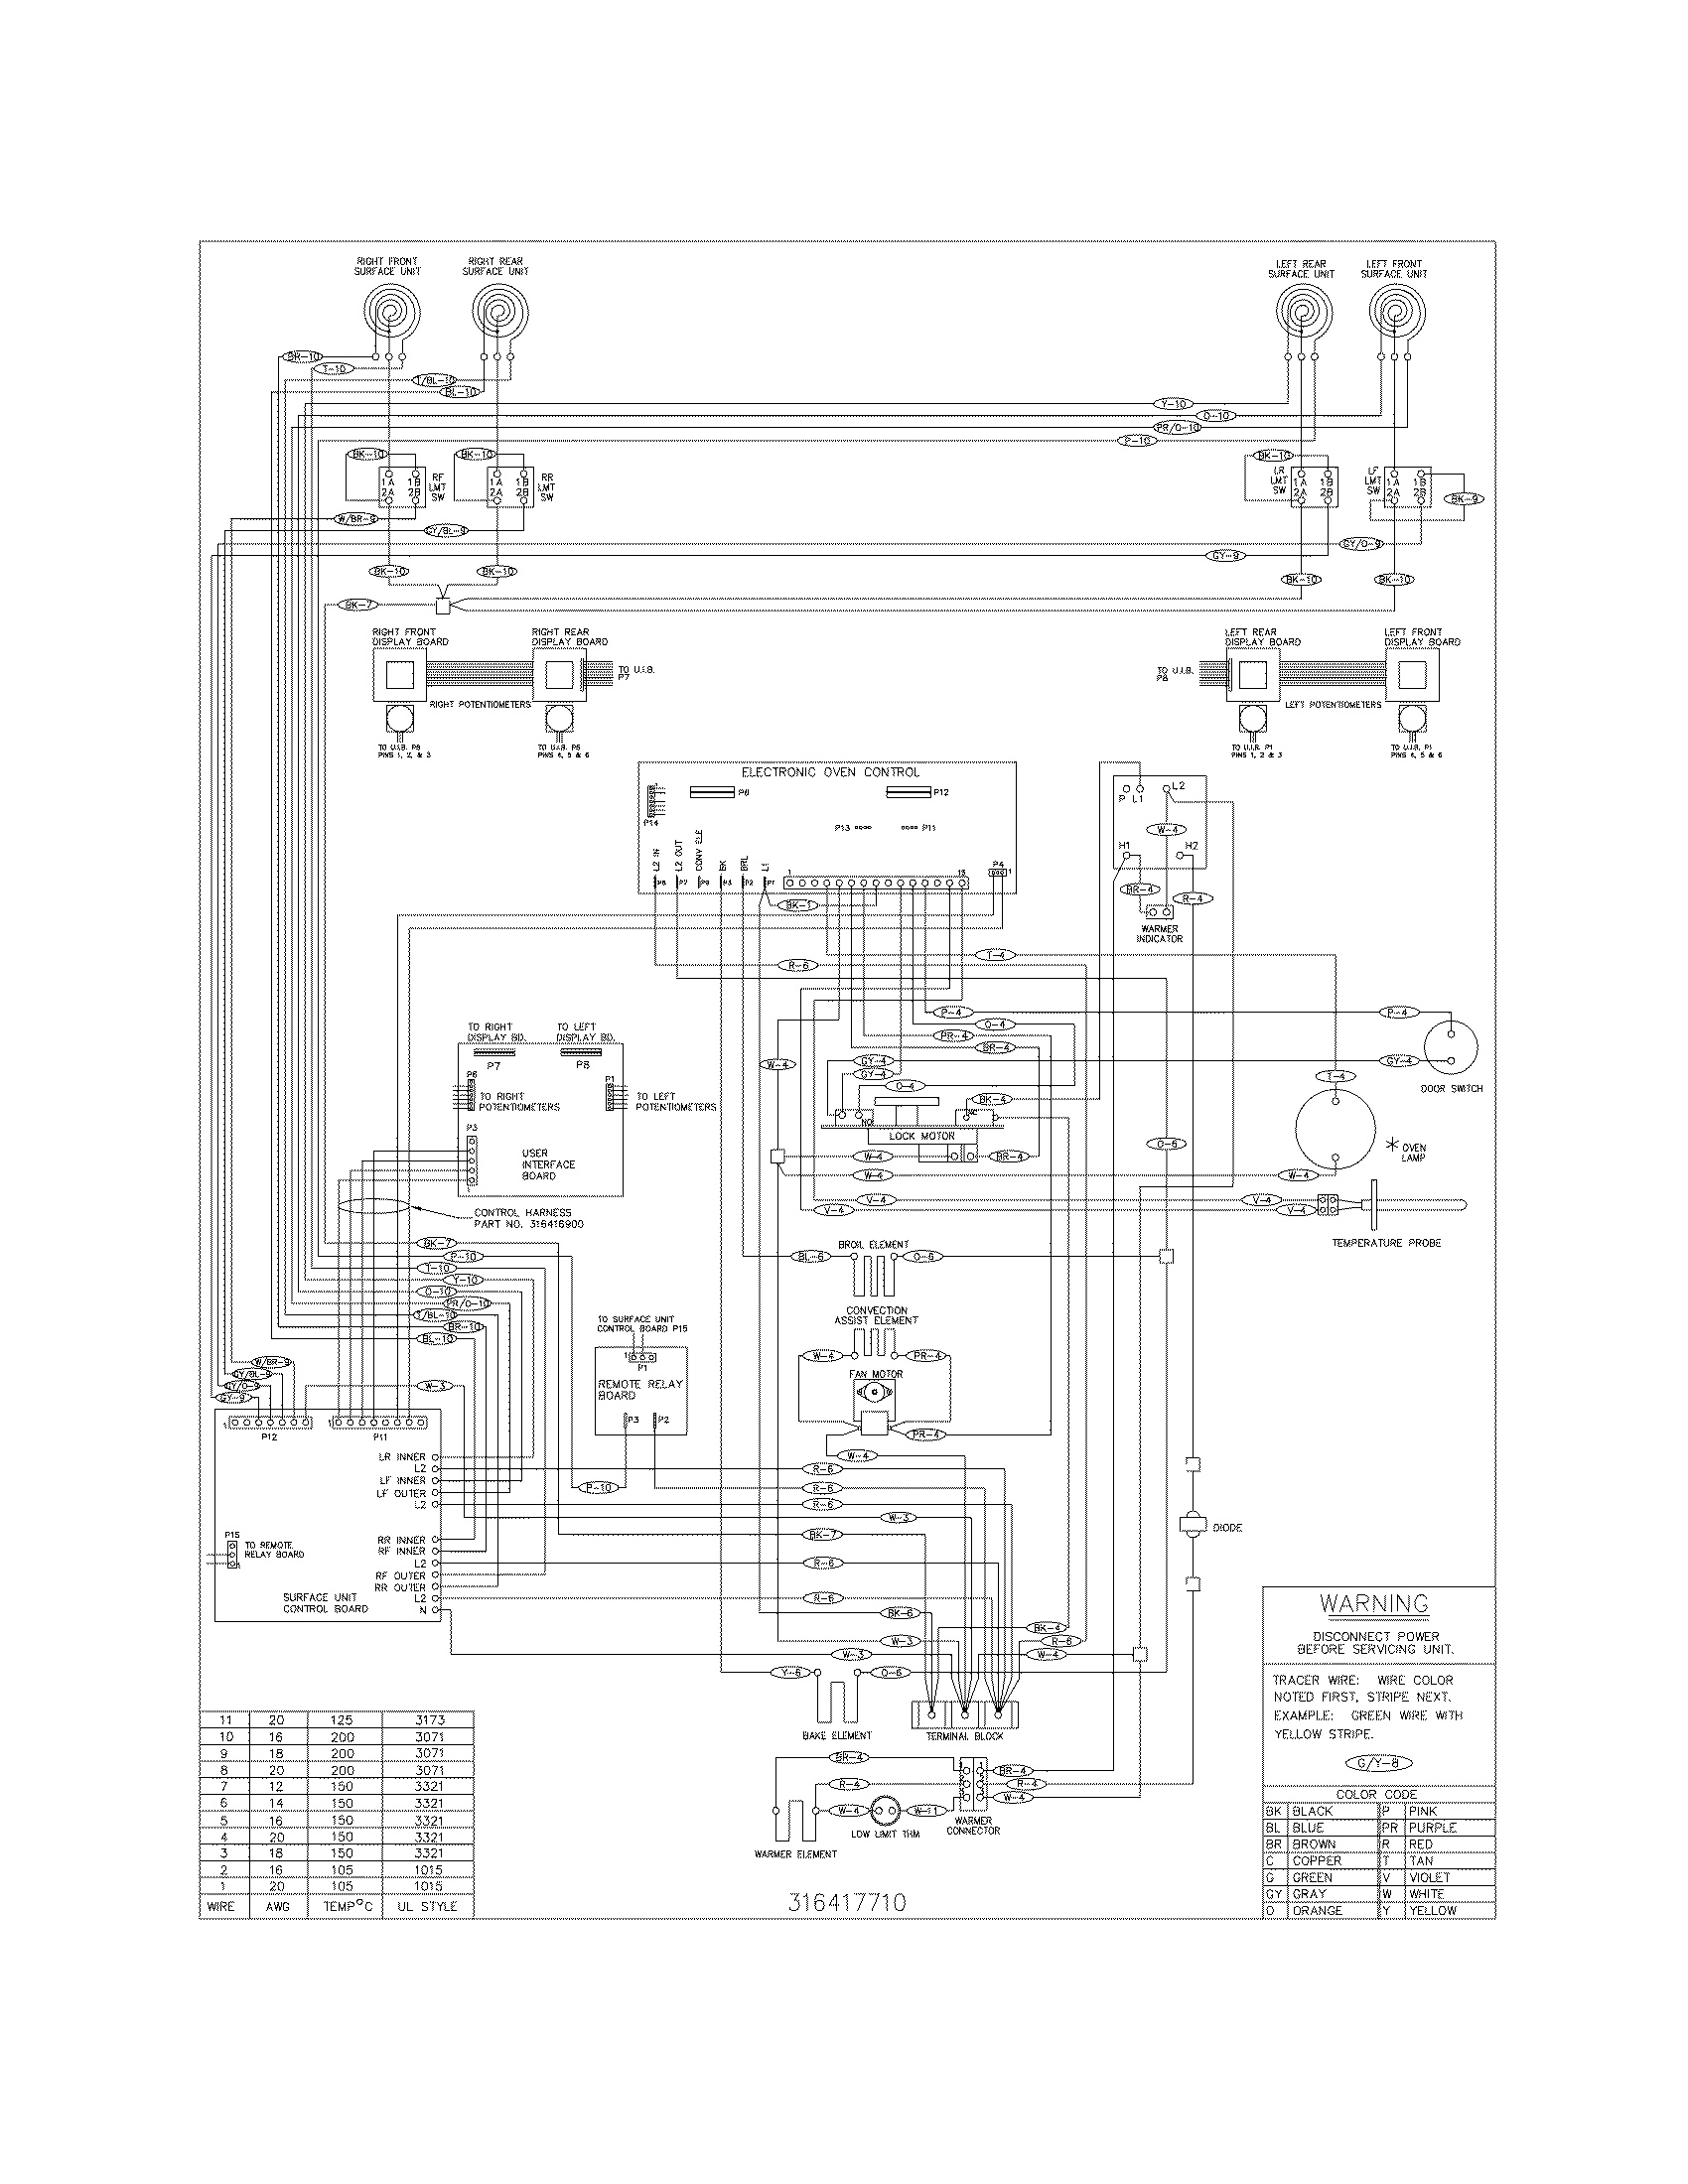 Honda Foreman 500 Parts Diagram. Honda. Auto Wiring Diagram